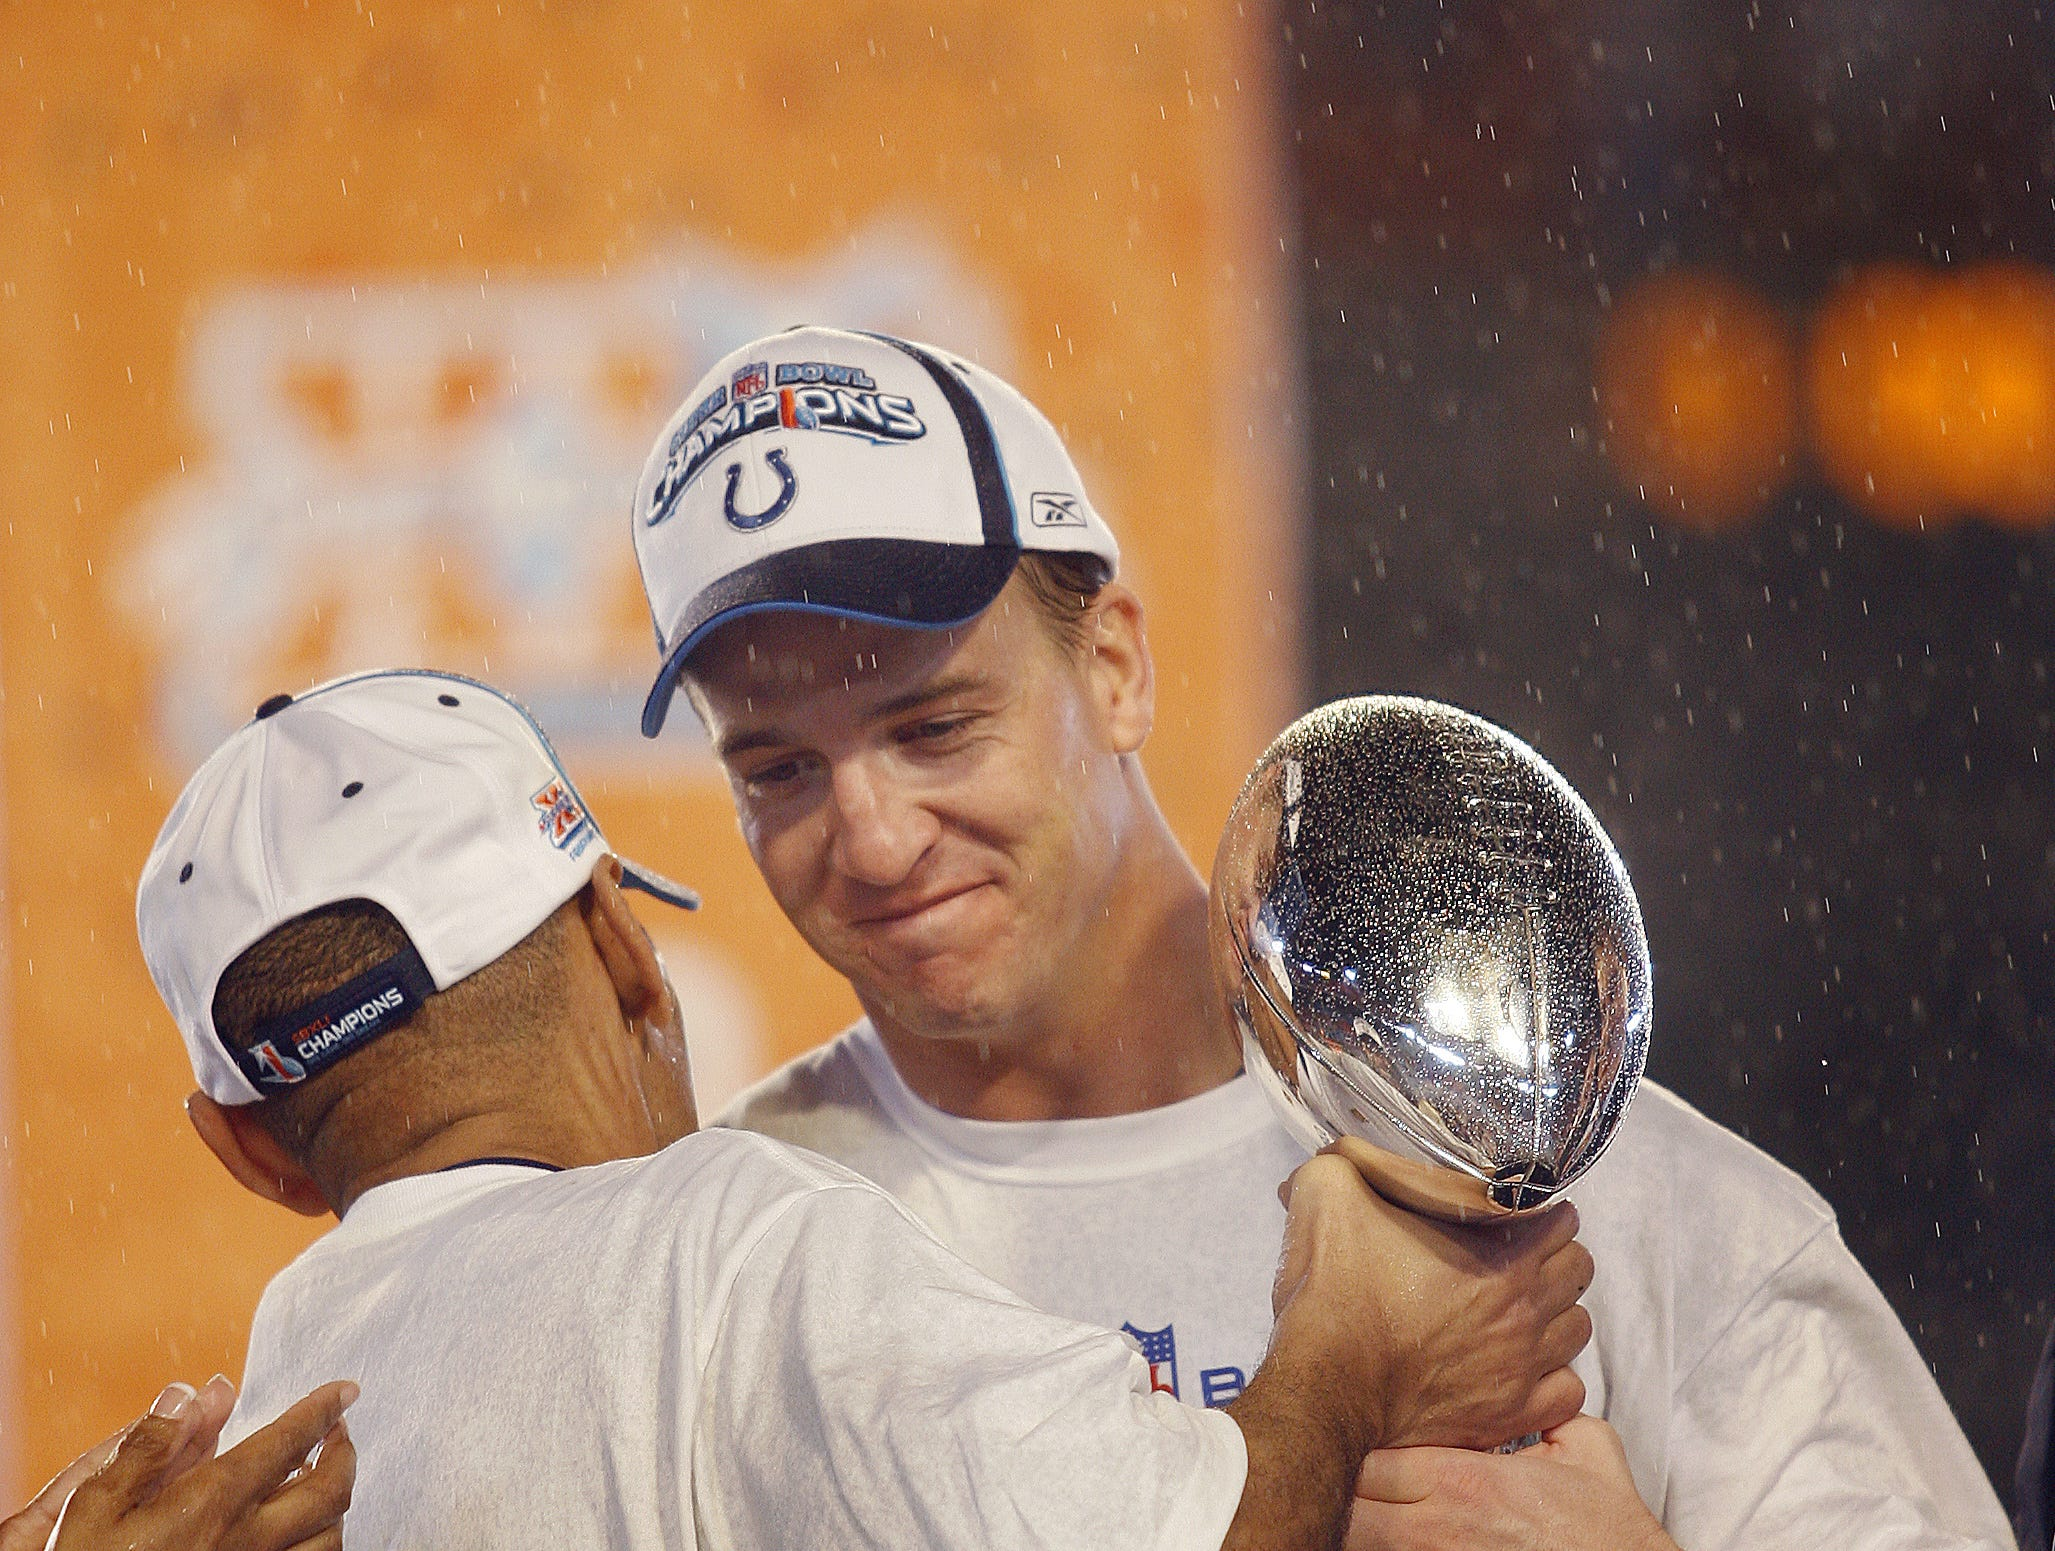 Indianapolis Colts head coach Tony Dungy hand the Vince Lombardi Trophy to his quarterback Peyton Manning following the Colts 29-17 win in Super Bowl XLI on February 4, 2007 at Dolphins Stadium in Miami, Fla.